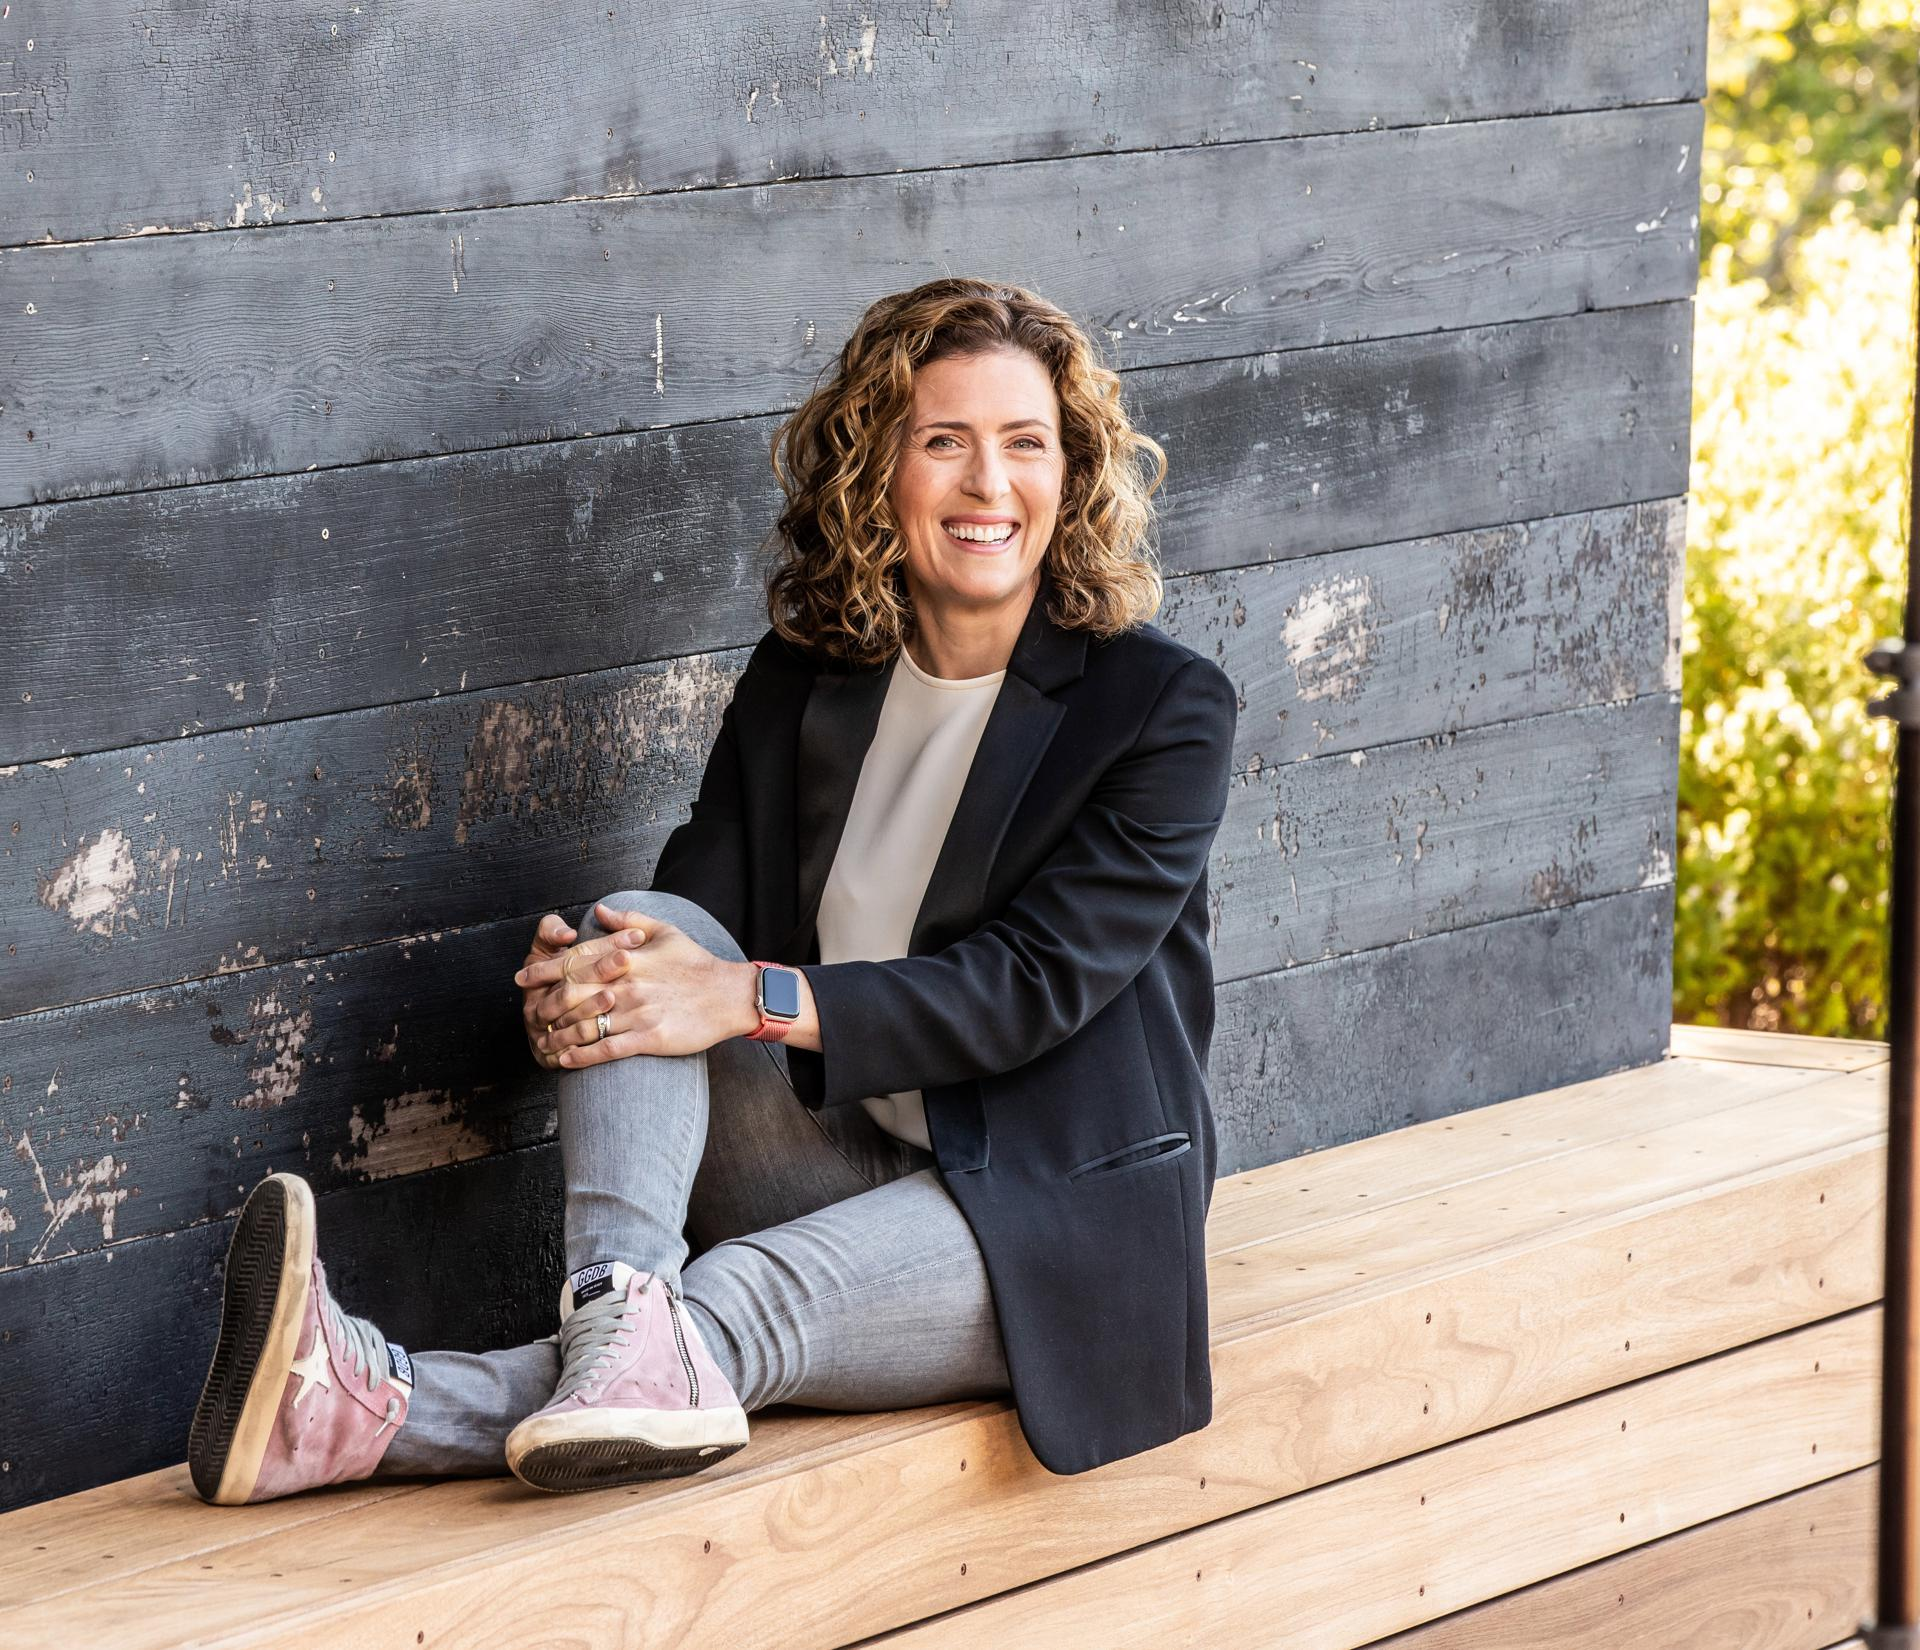 Ali Rosenthal of Leadout Capital